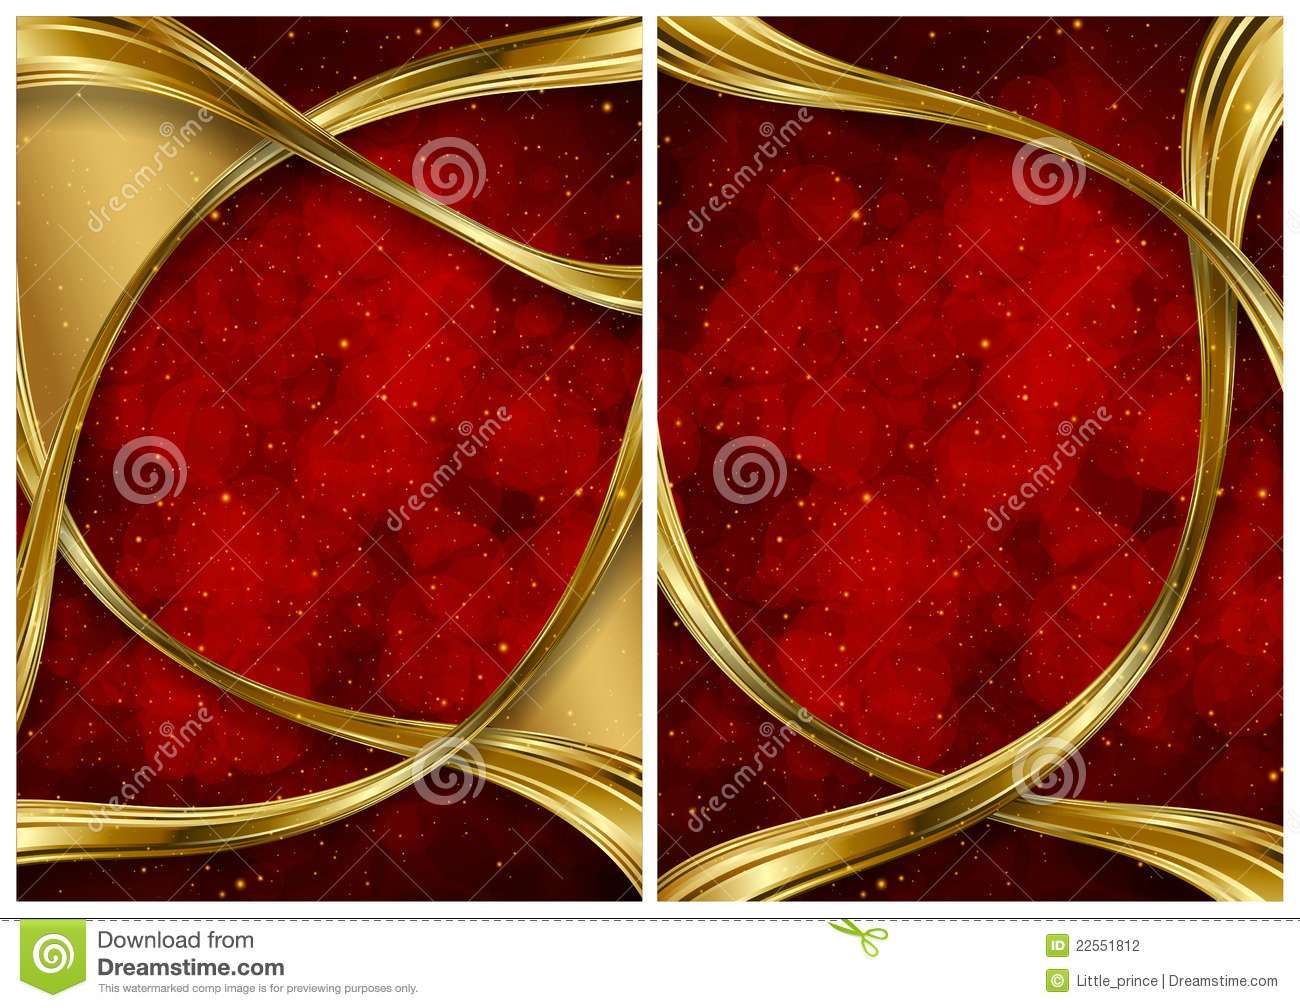 Gold And Red Abstract Backgrounds Stock Illustration